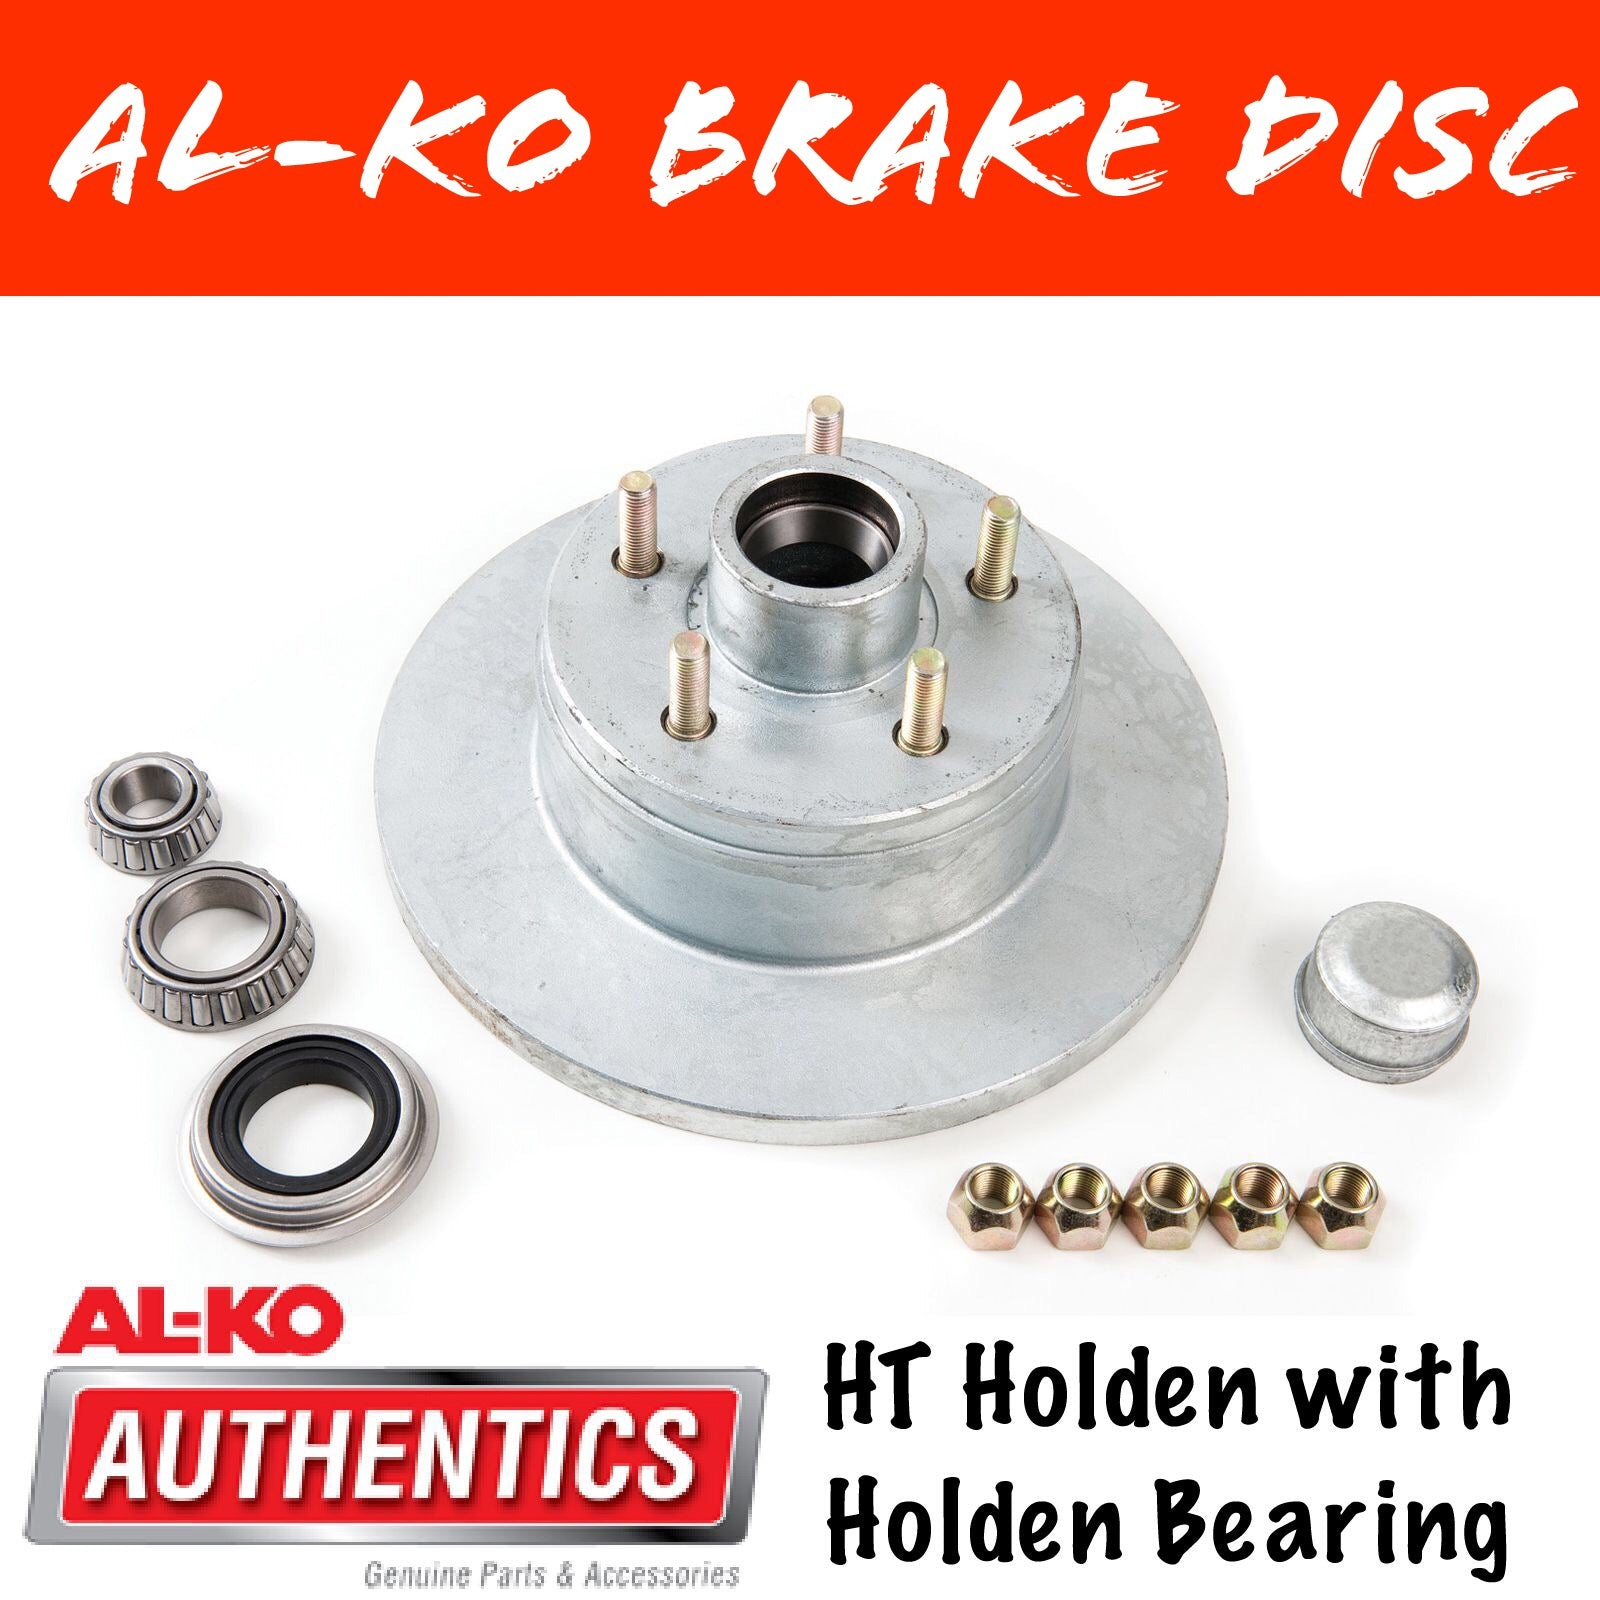 AL-KO HT Holden Gal Brake Disc with Holden Bearings